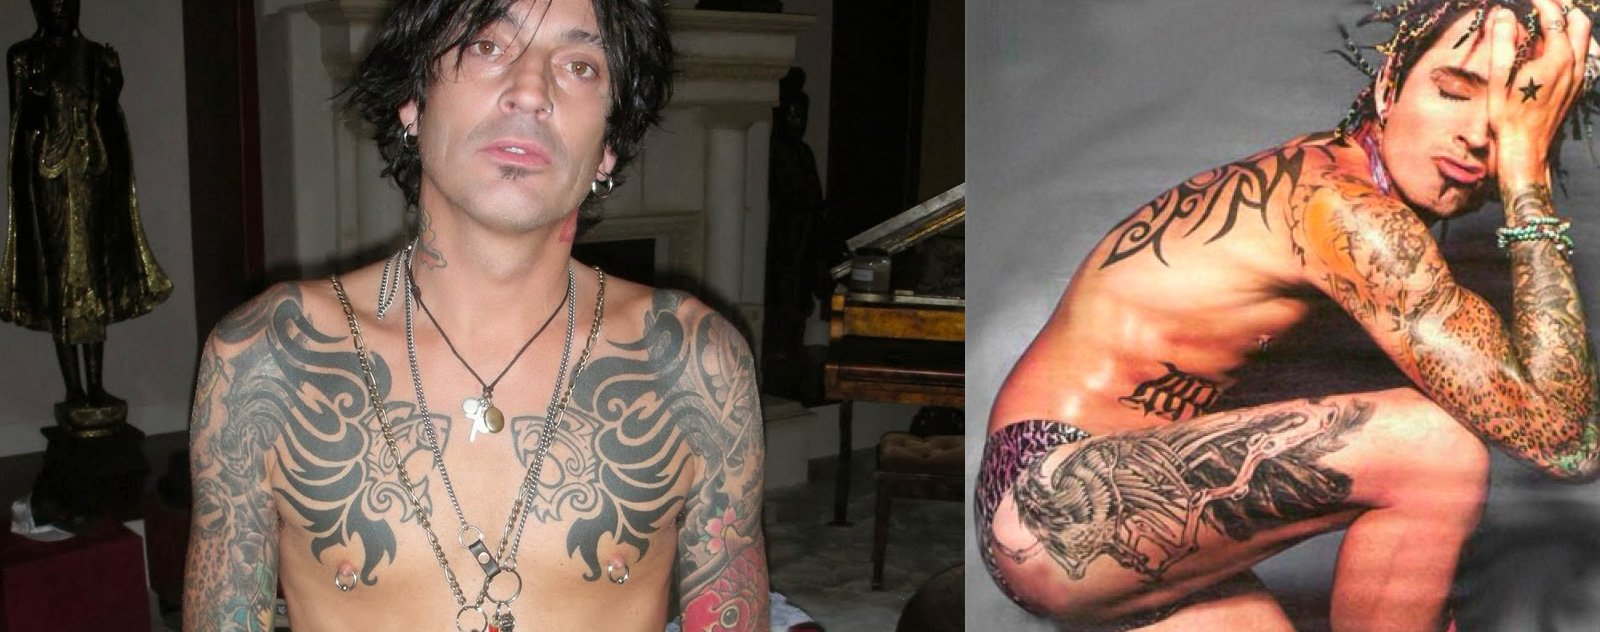 Tommy lee tattoo